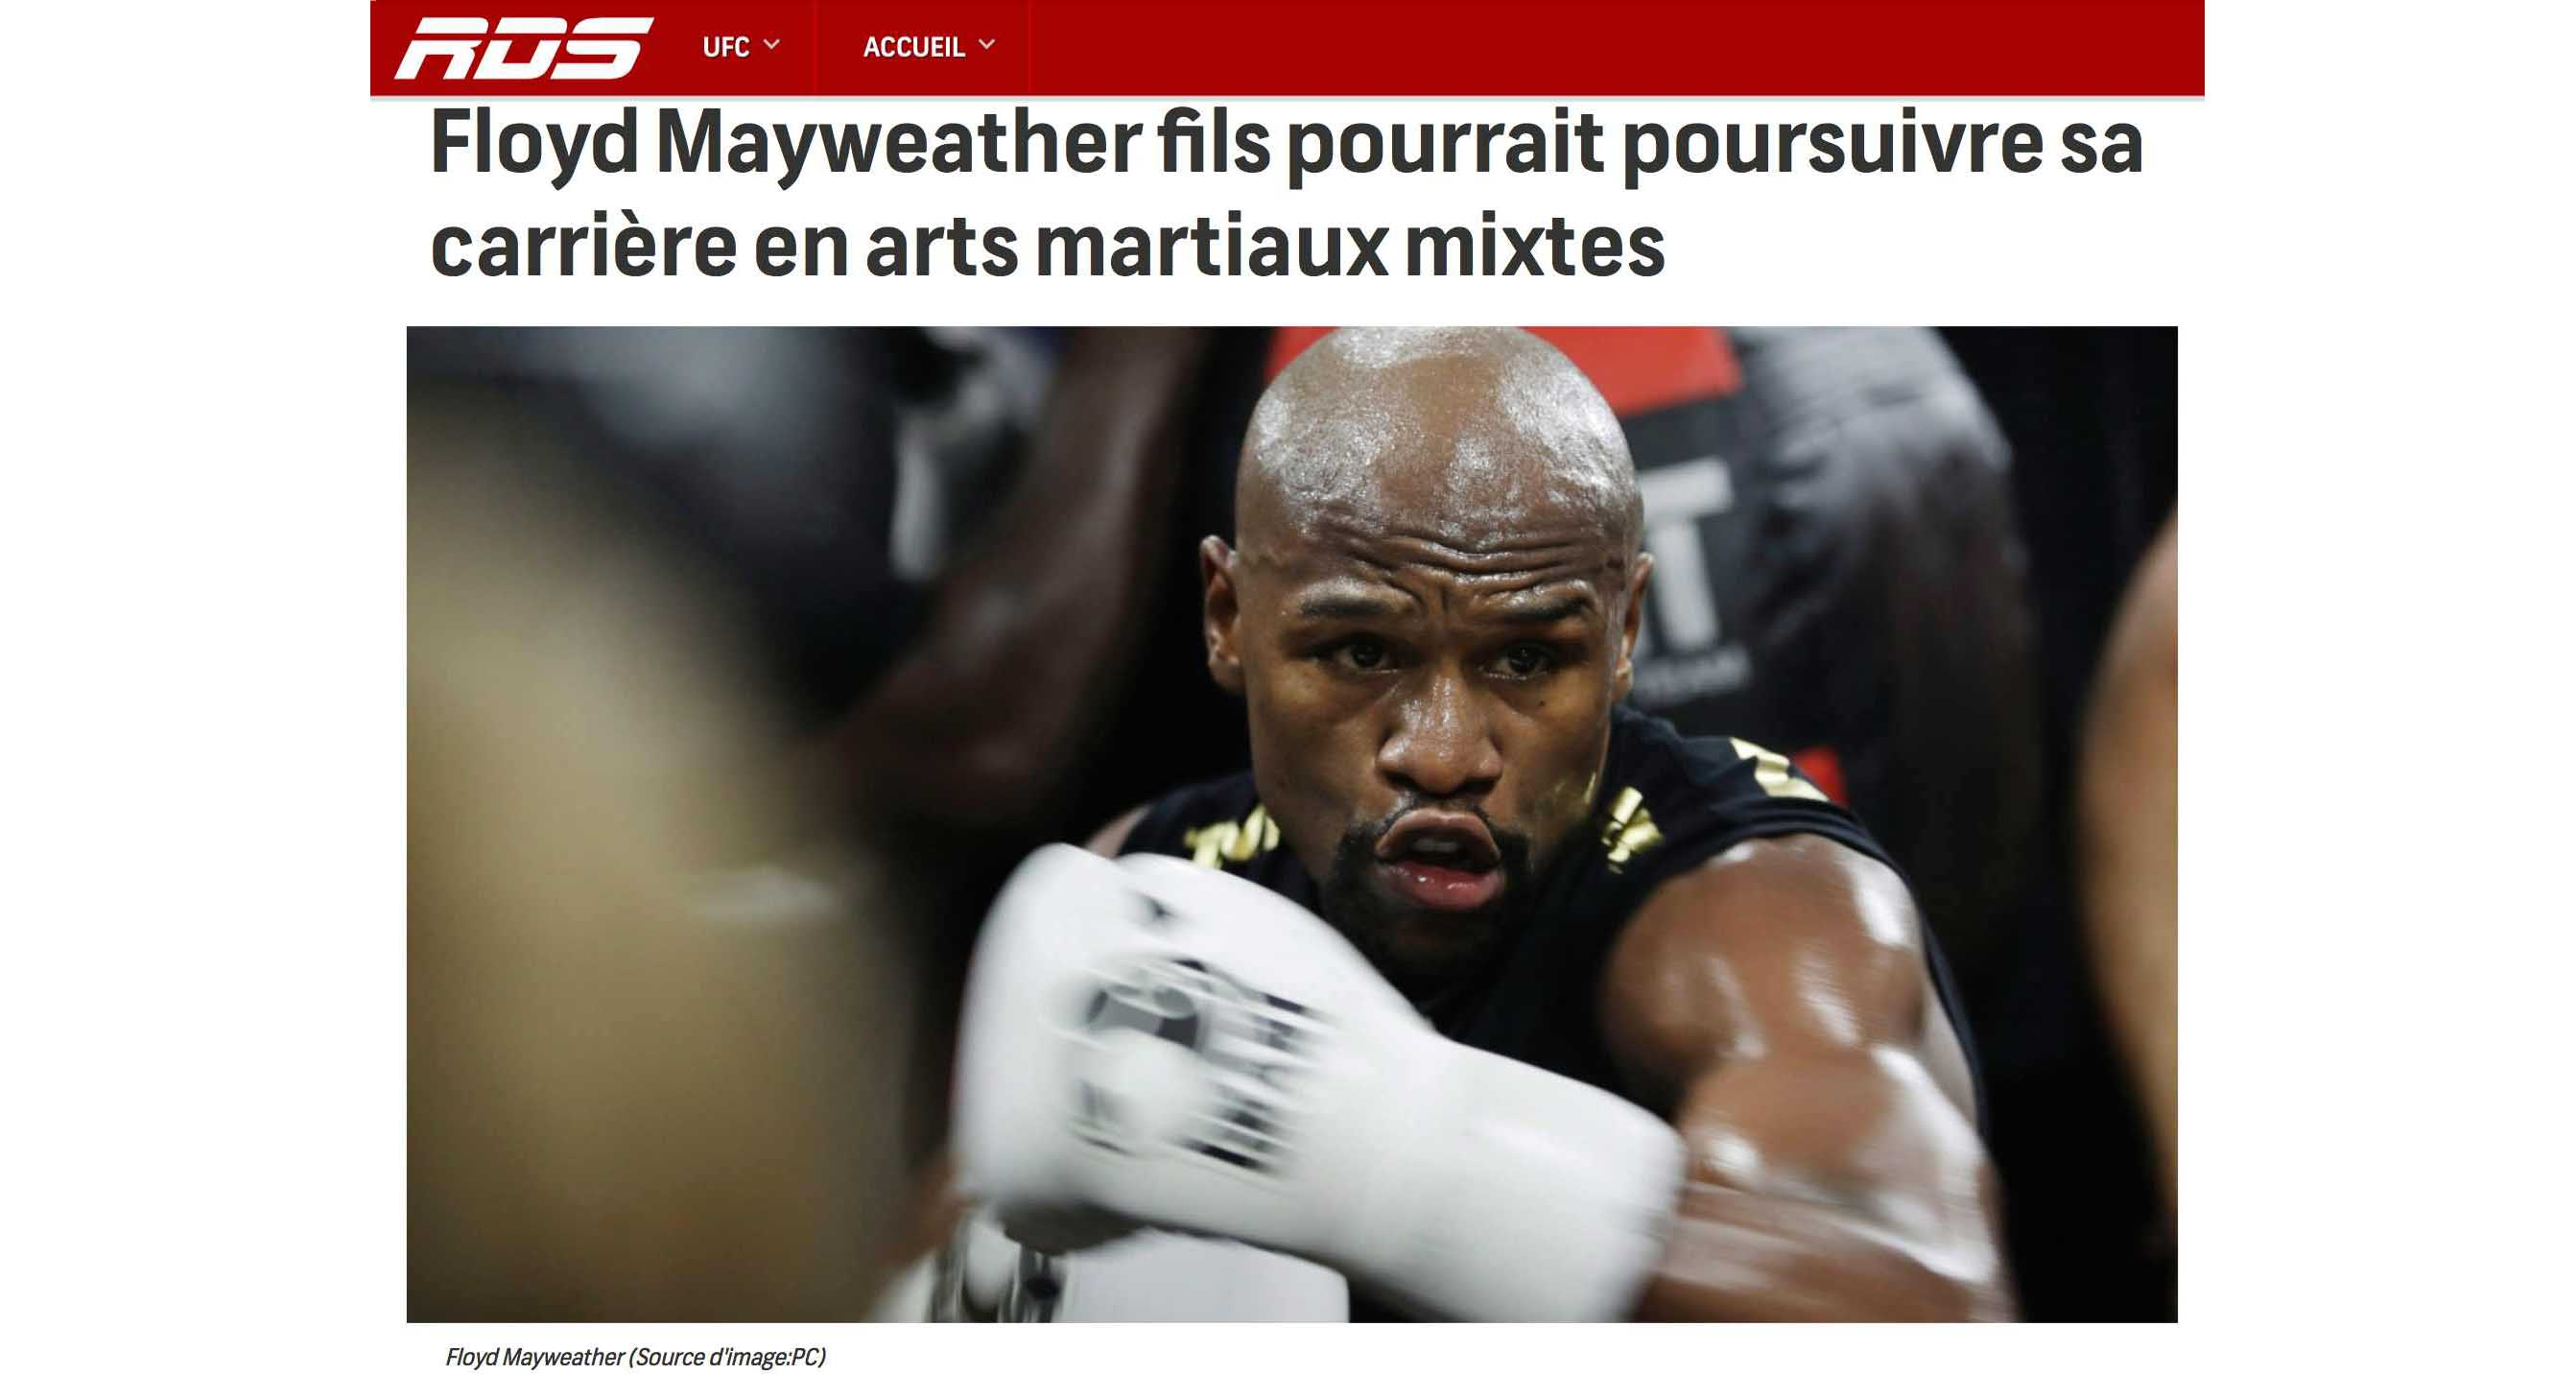 Floyd mayweatherreceived retraité_1815479361805161